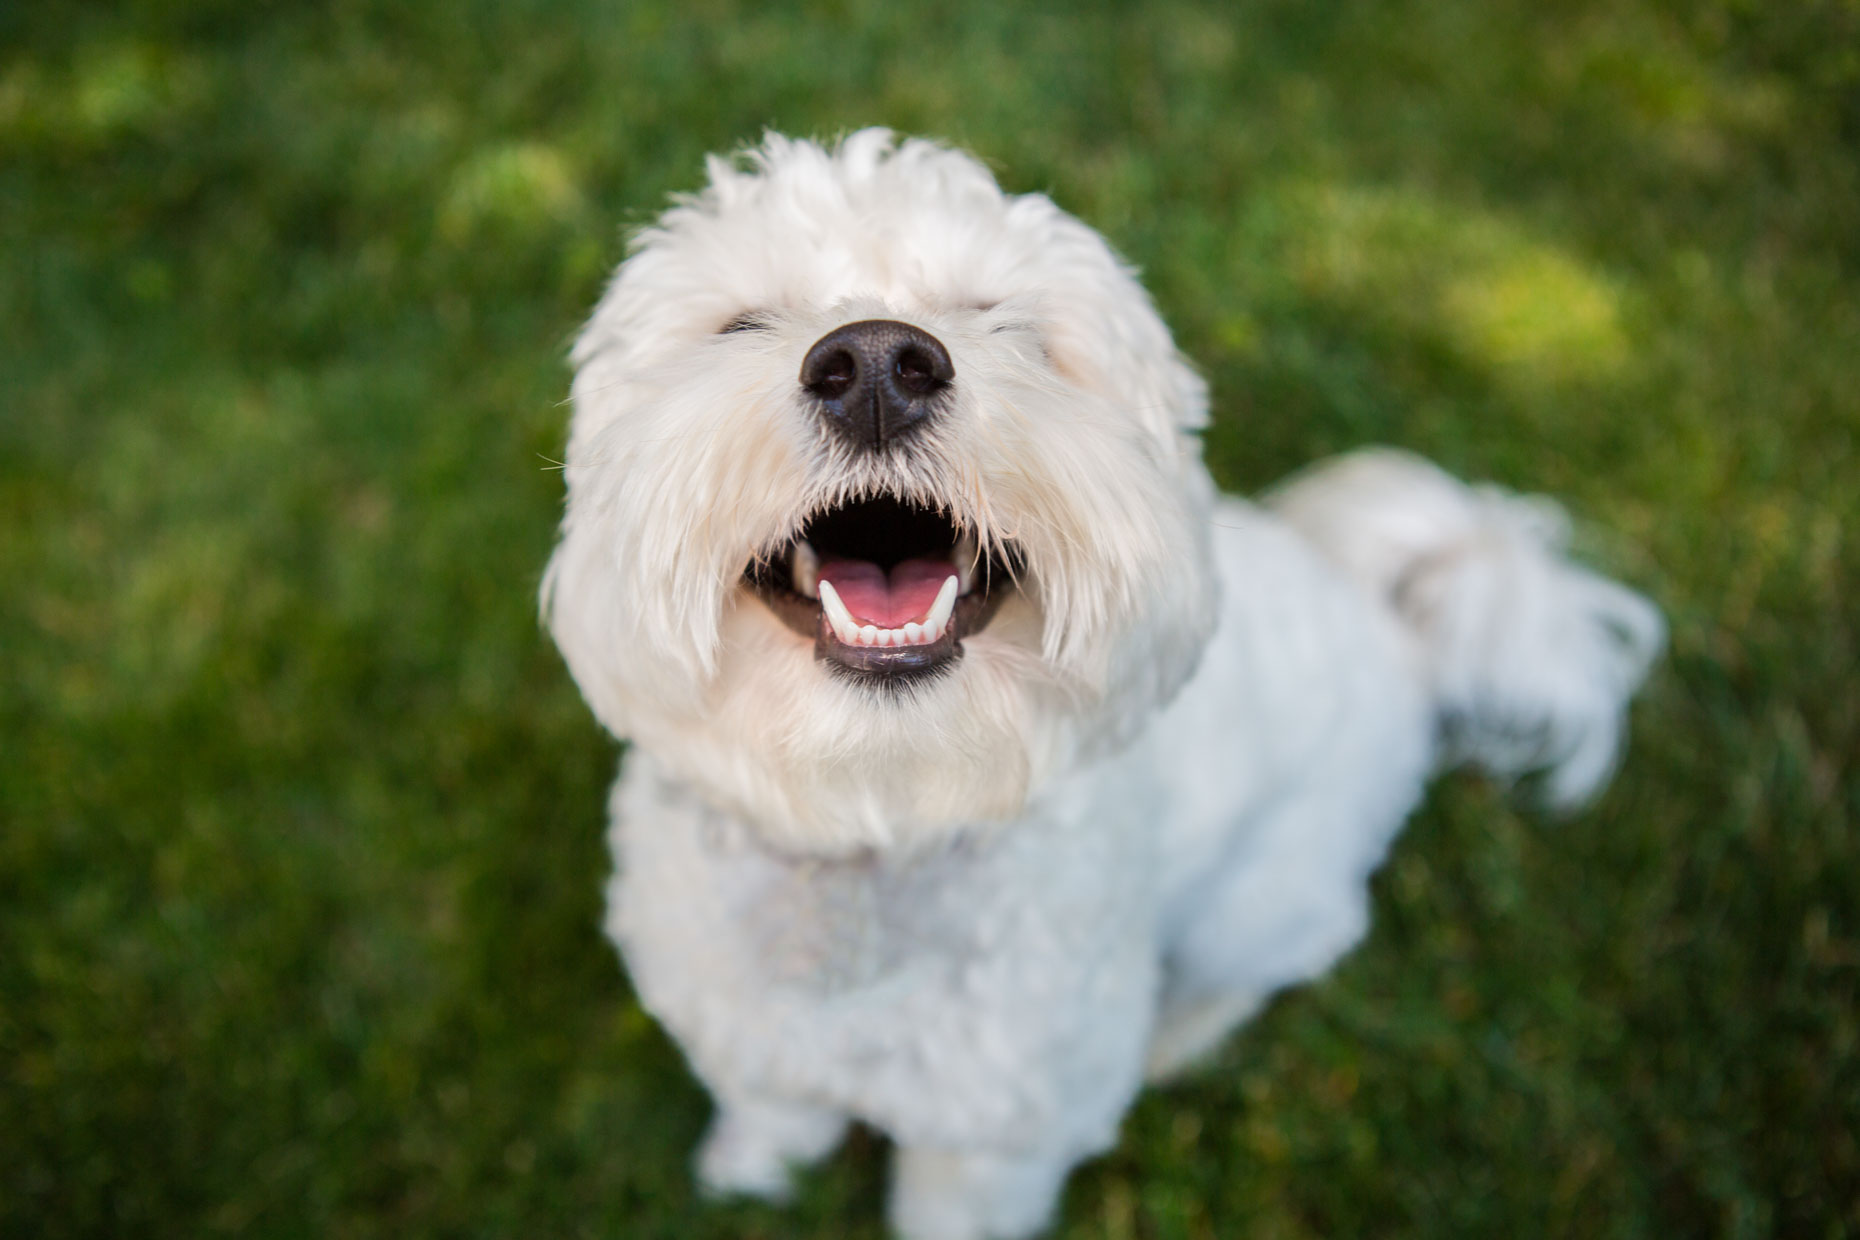 Dog and Pet Photography  |  Smiling White Dog by Mark Rogers